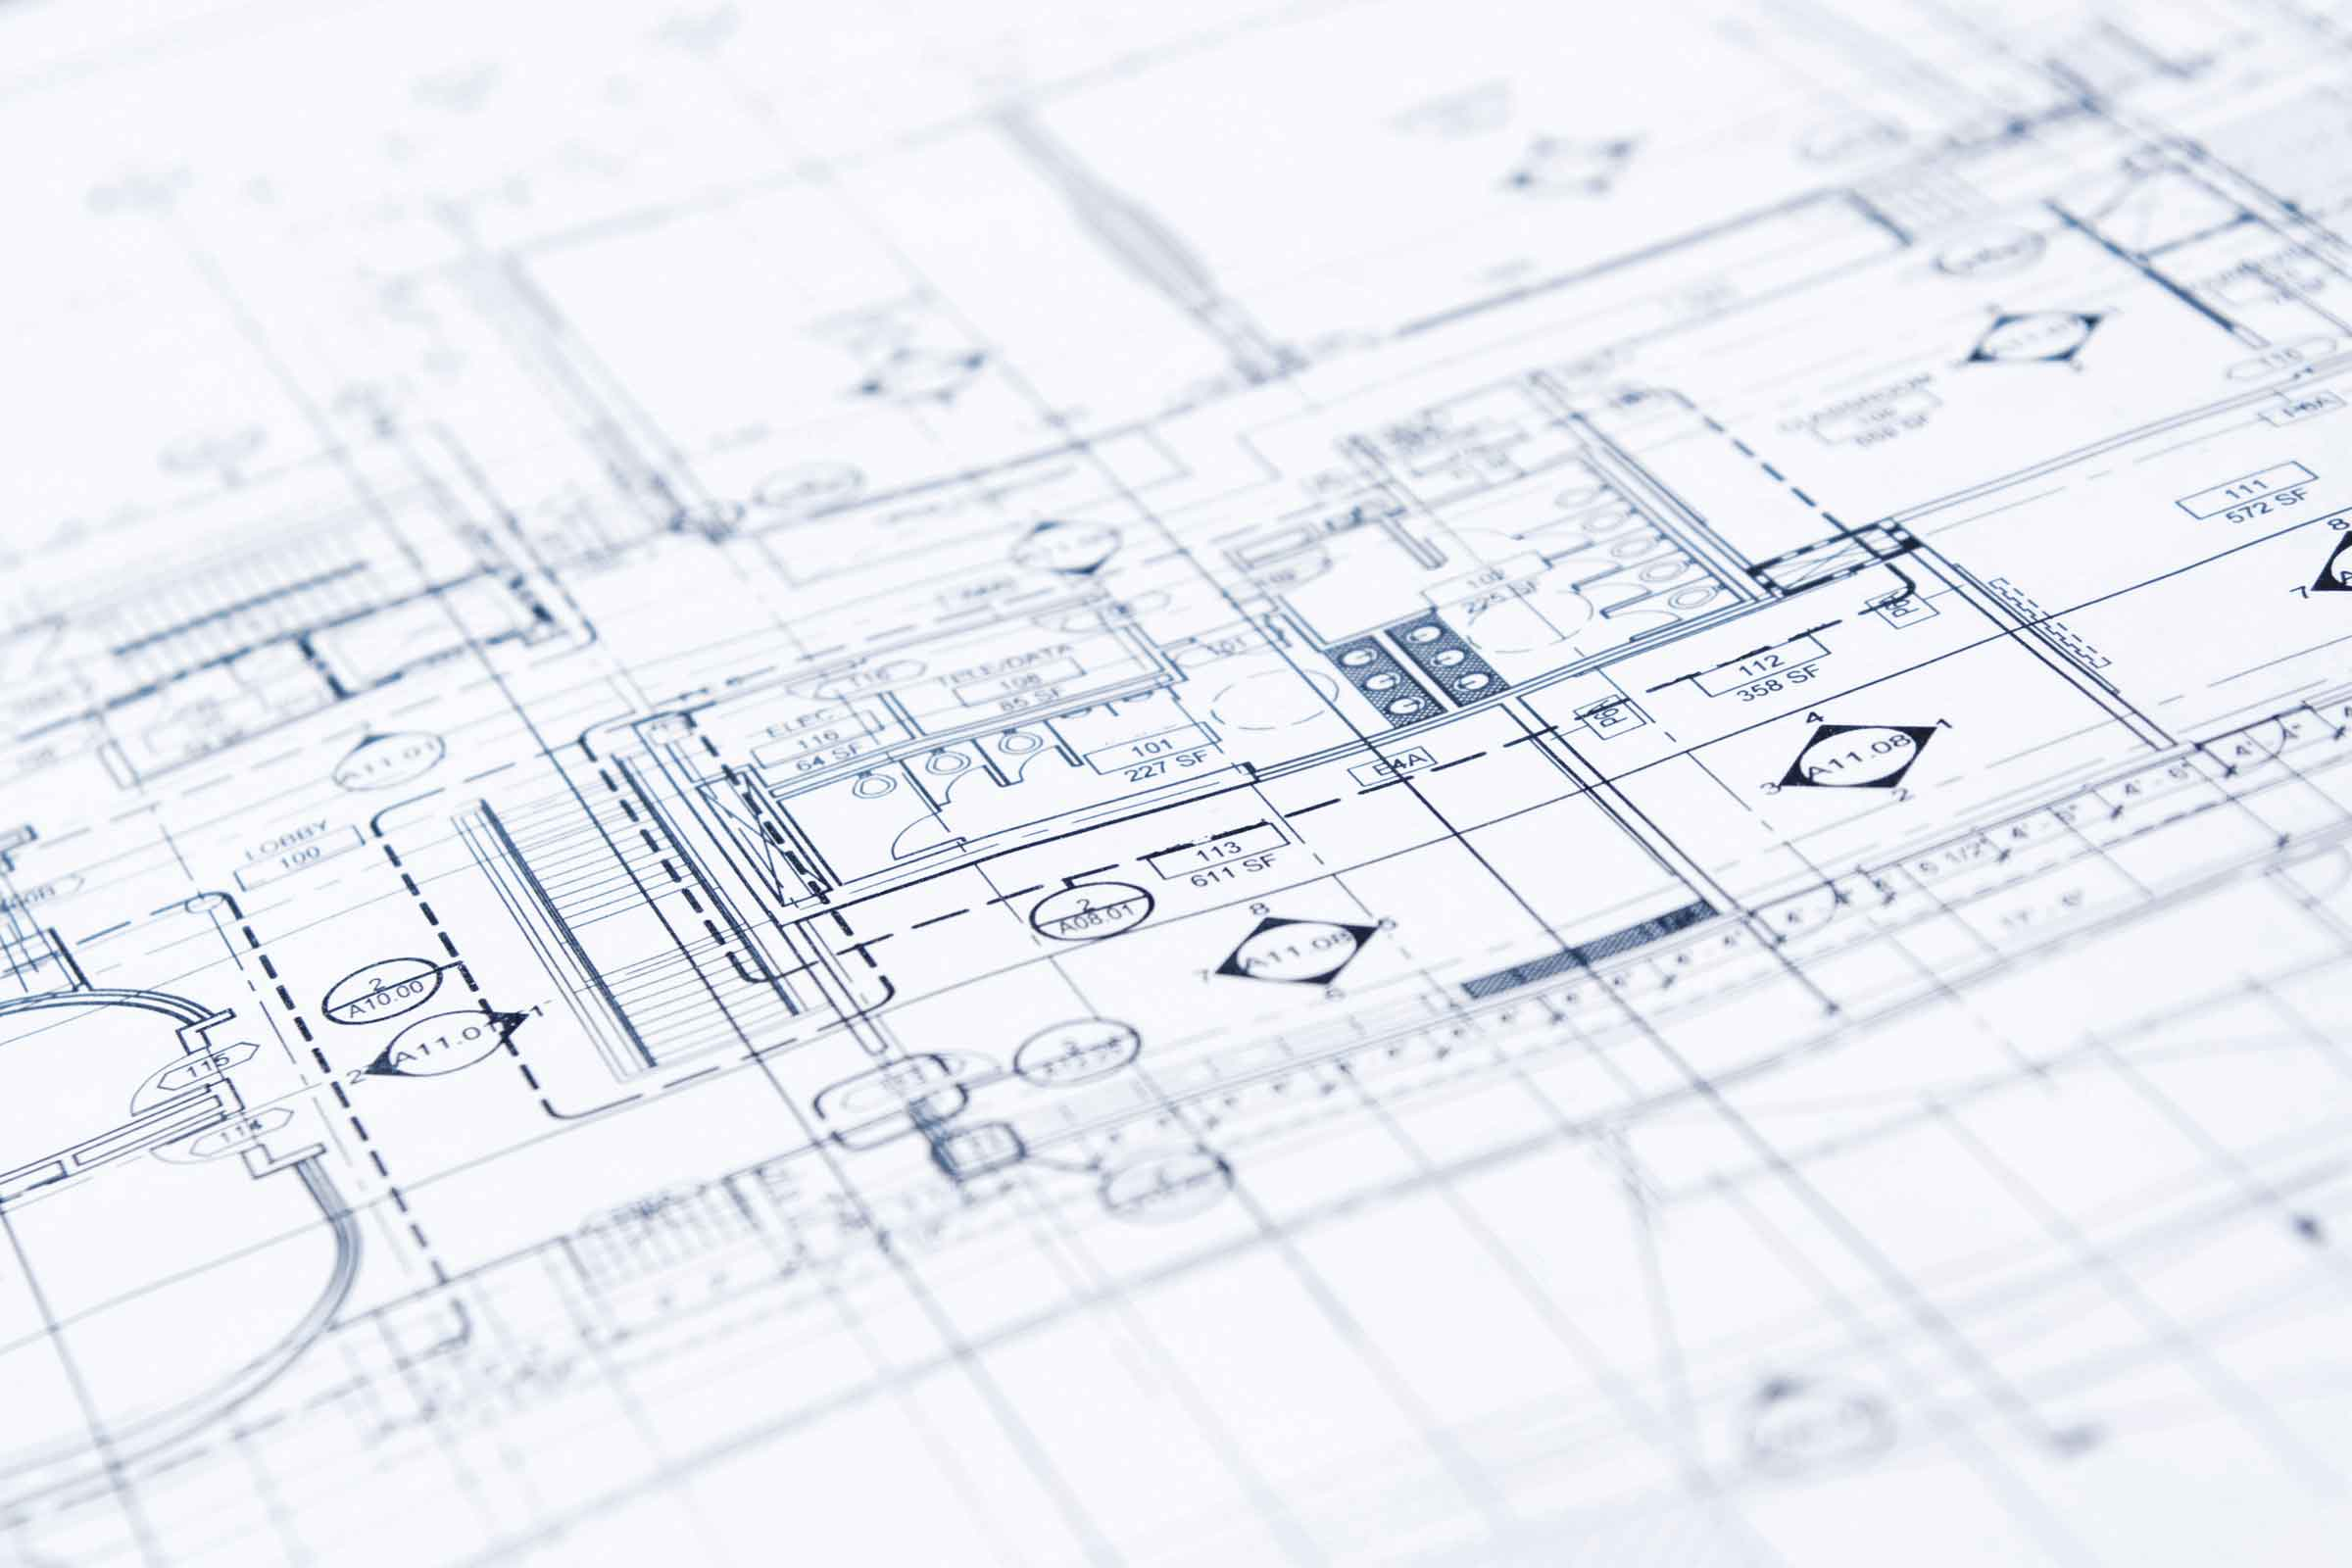 87 queen mary st troia homes troia logo blueprint bg malvernweather Image collections